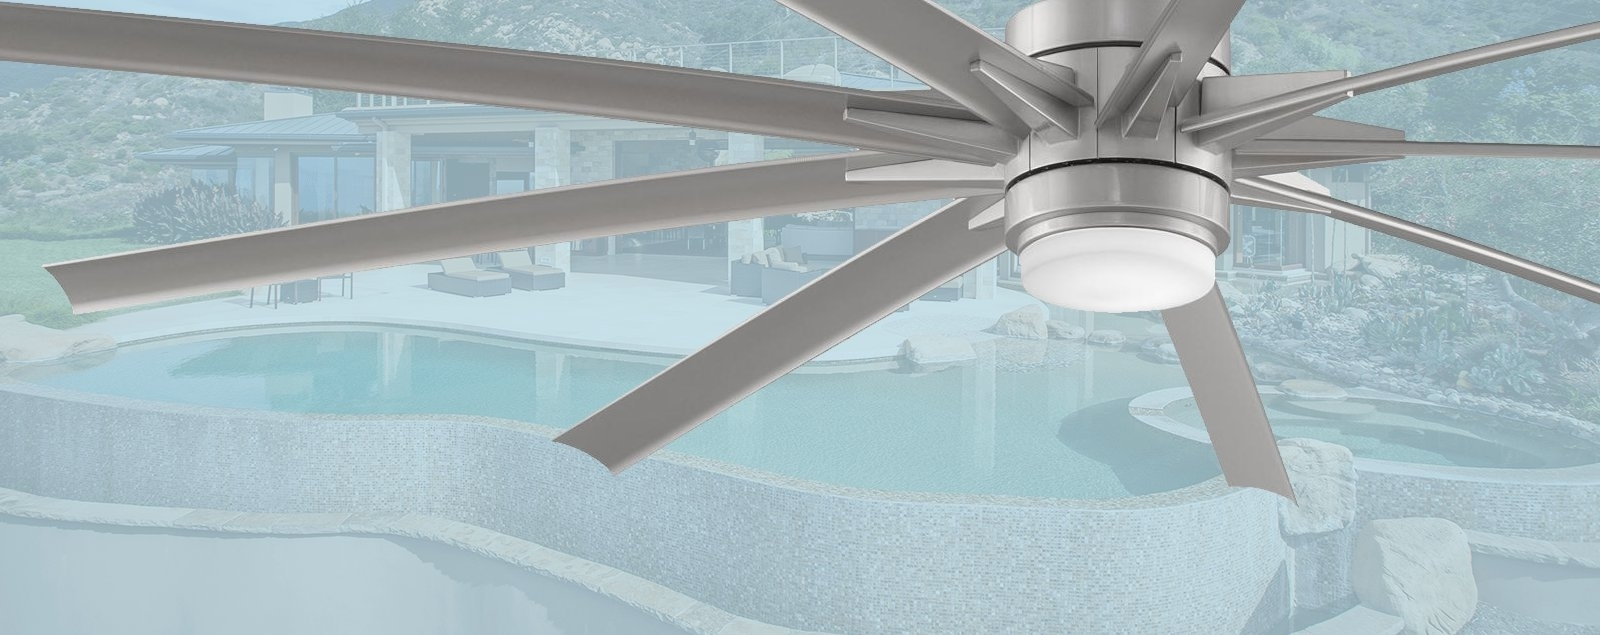 "Famous Large Outdoor Ceiling Fans With Lights Throughout Large Outdoor Ceiling Fans – Outdoor Fans Over 60"" In Diameter (View 5 of 20)"